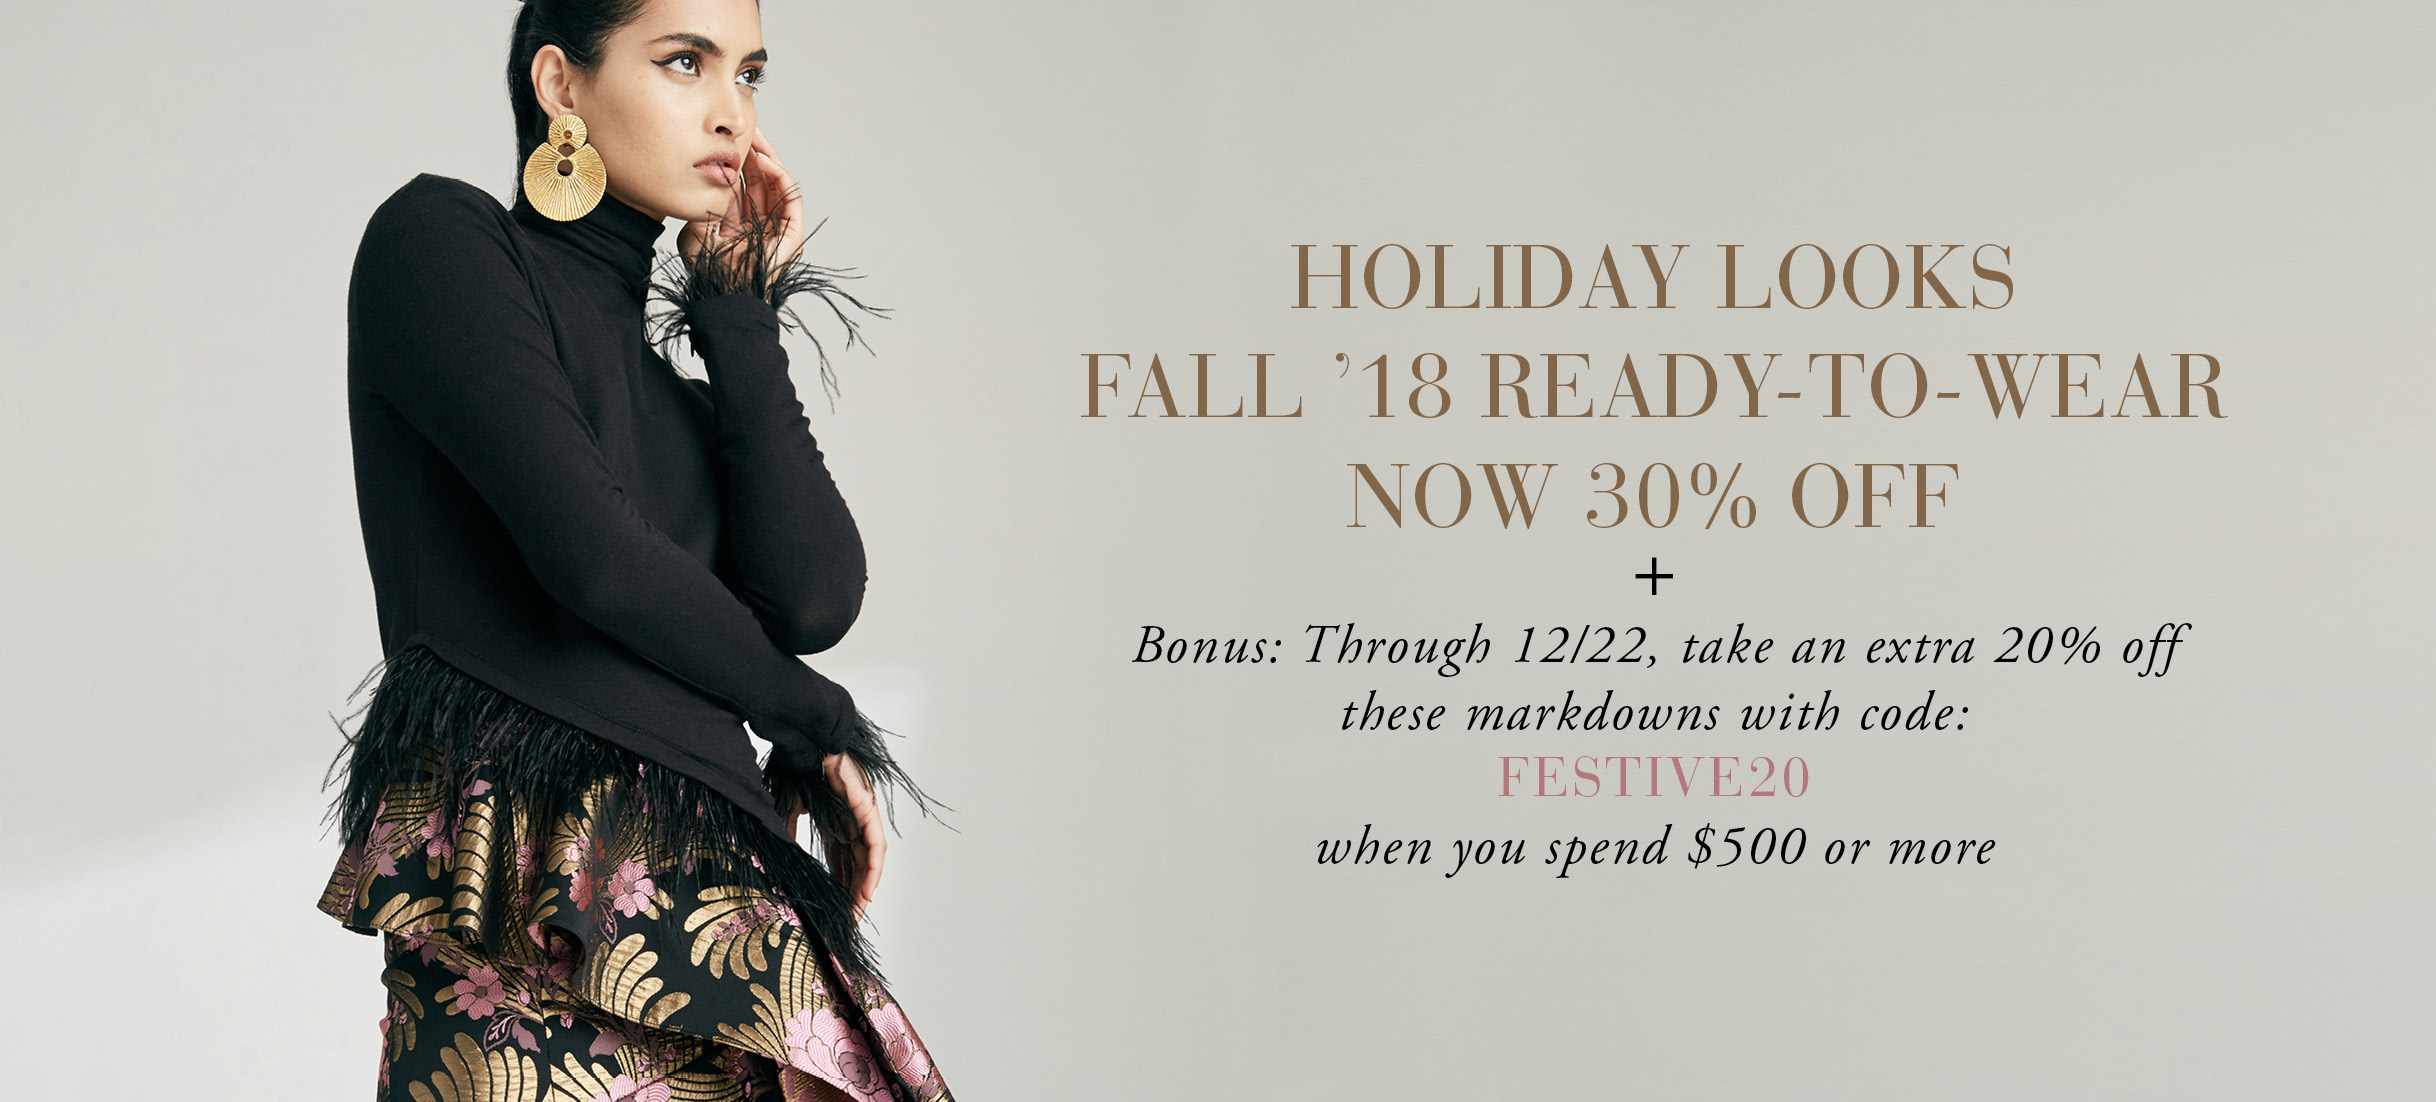 30% Off Holiday Looks